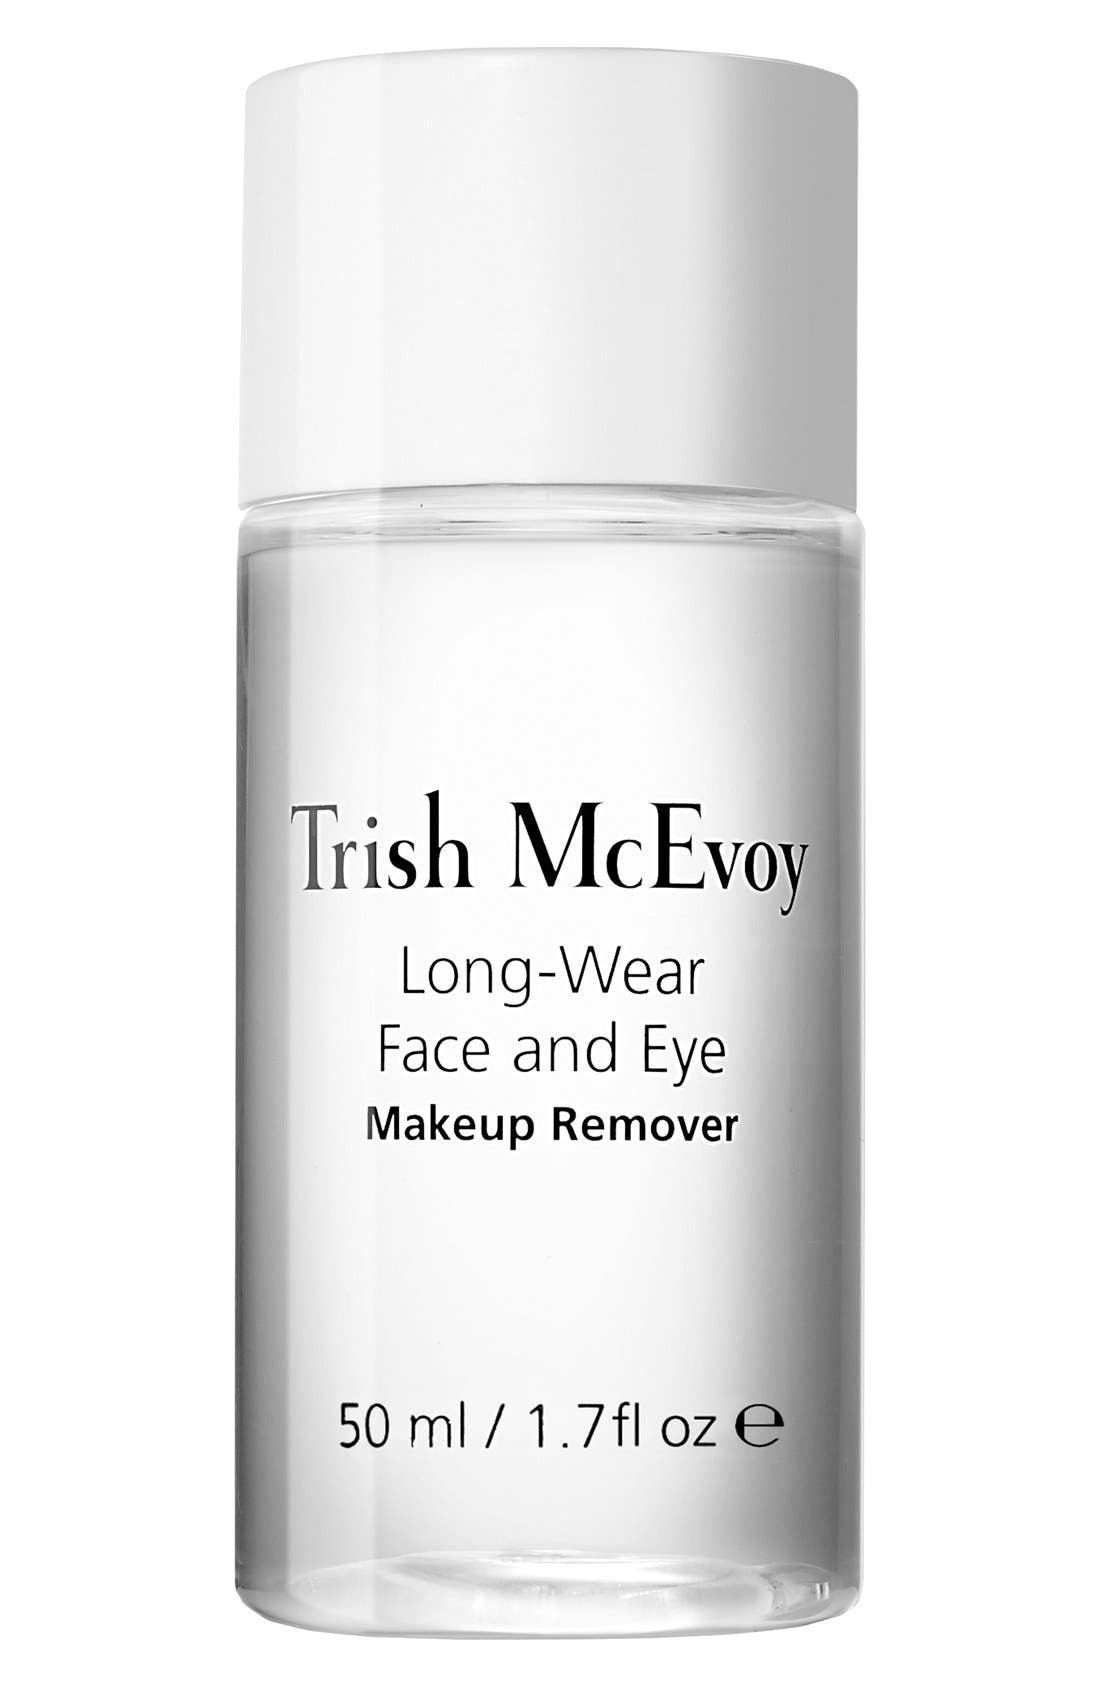 Trish McEvoy Long-Wear Face & Eye Makeup Remover